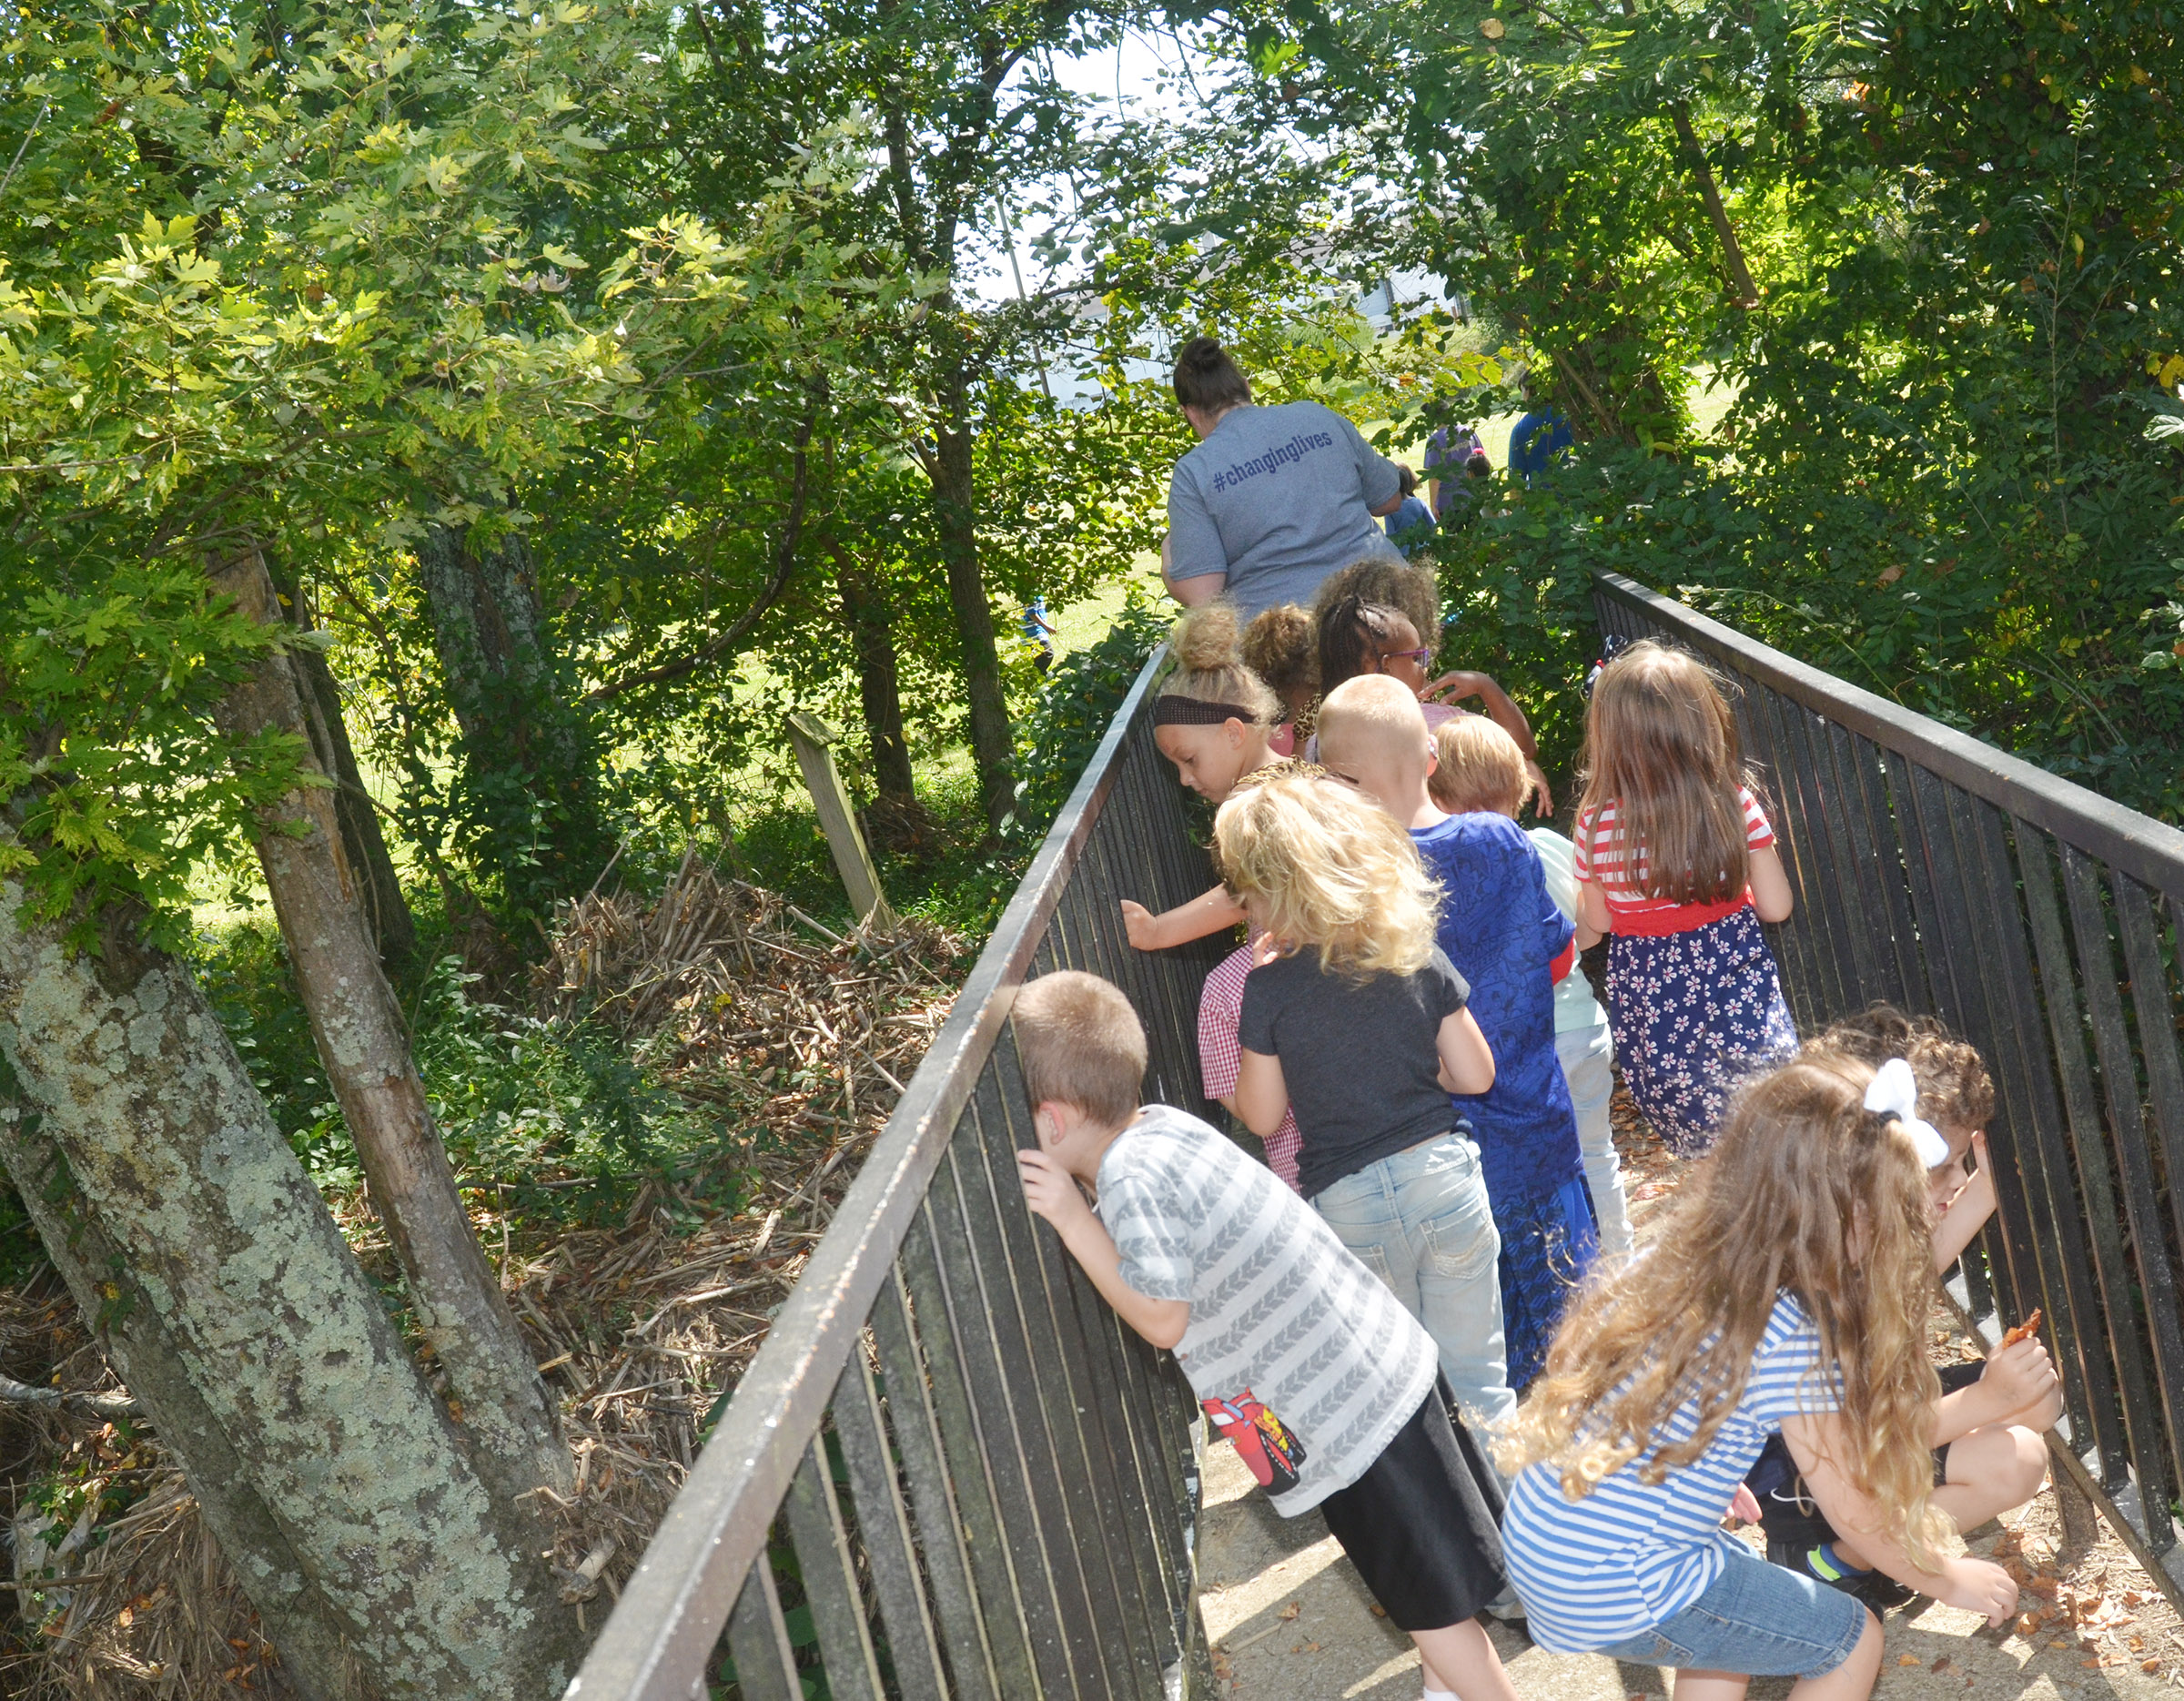 CES preschool teacher Julie Shelton leads her students across a bridge during their nature walk.